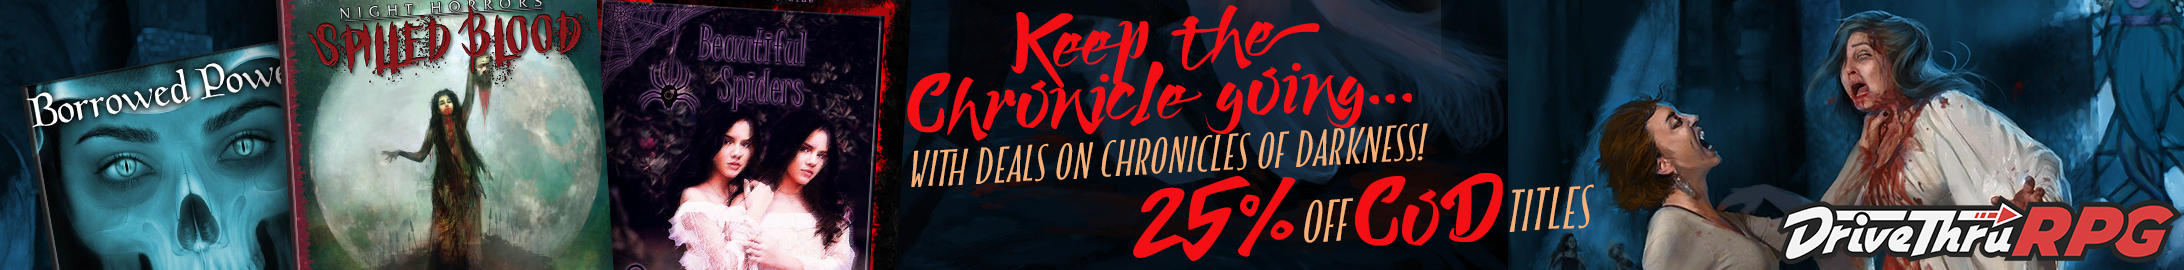 Keep the Chronicle Going sale @ DriveThruRPG.com